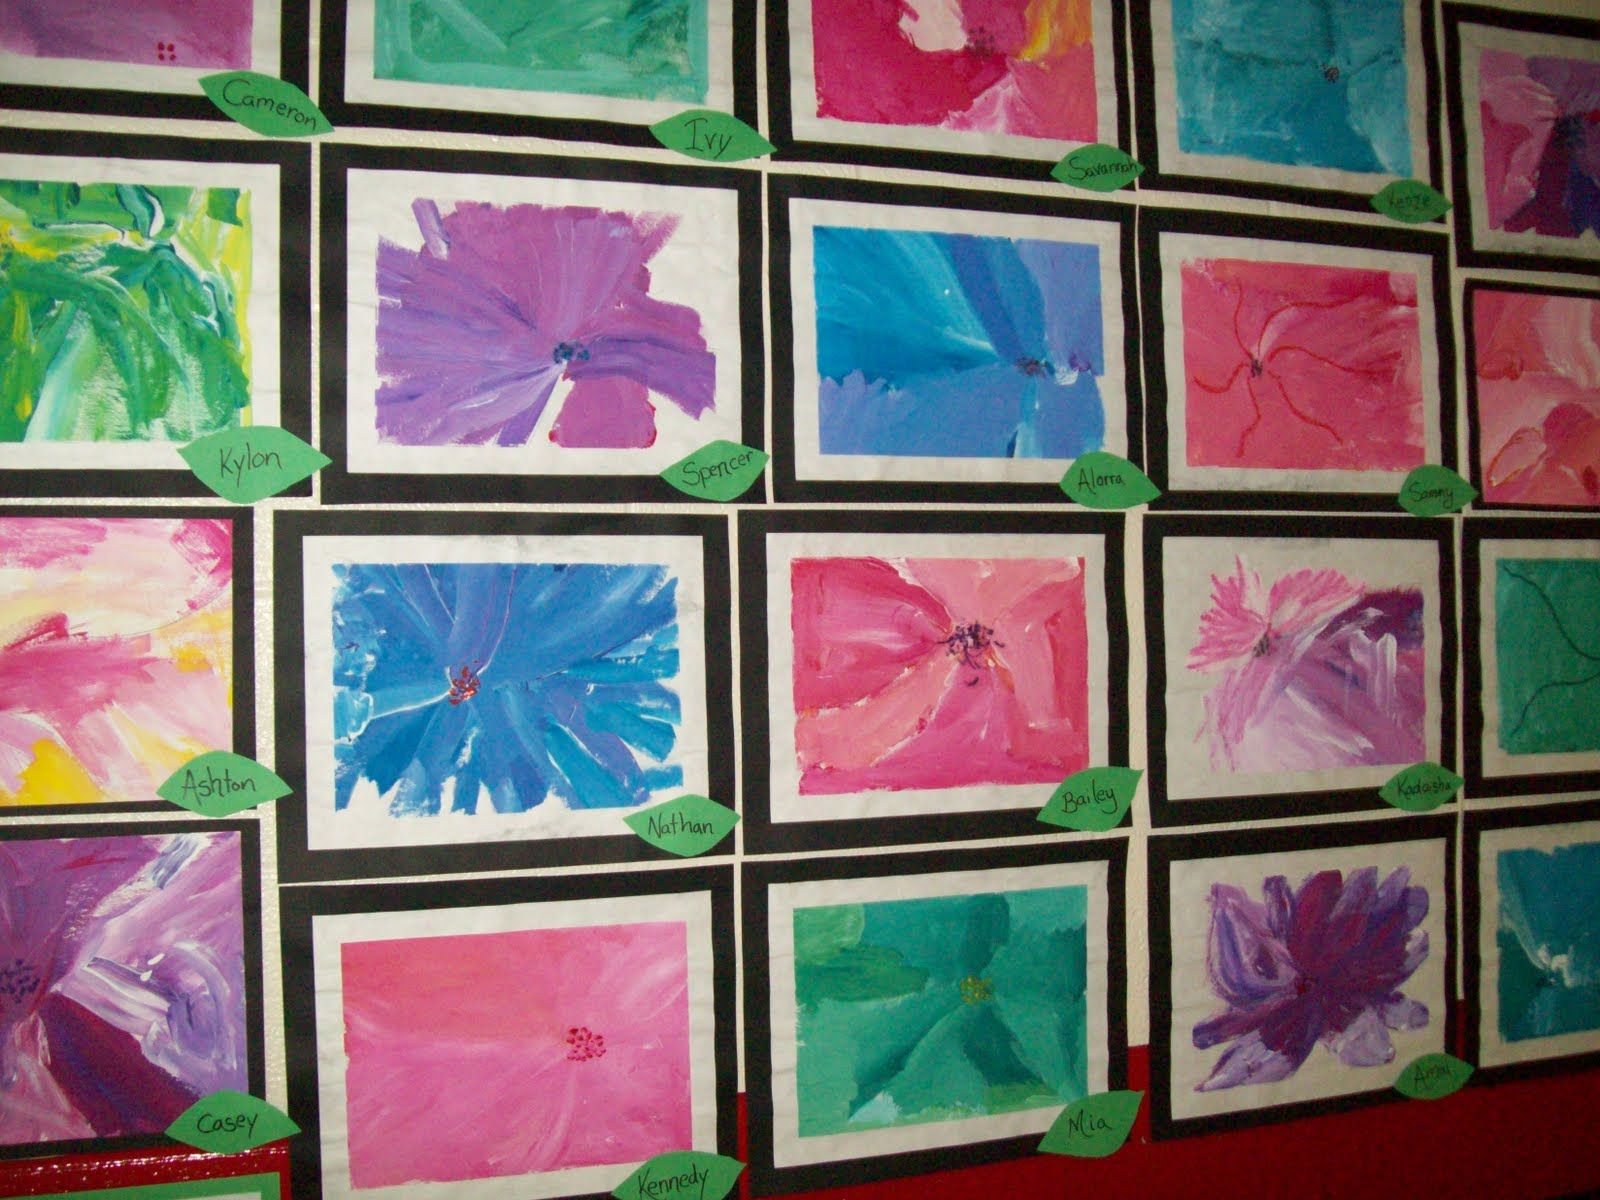 Kindergarten Art Lessons | Art With Mr E: Kindergarten Art